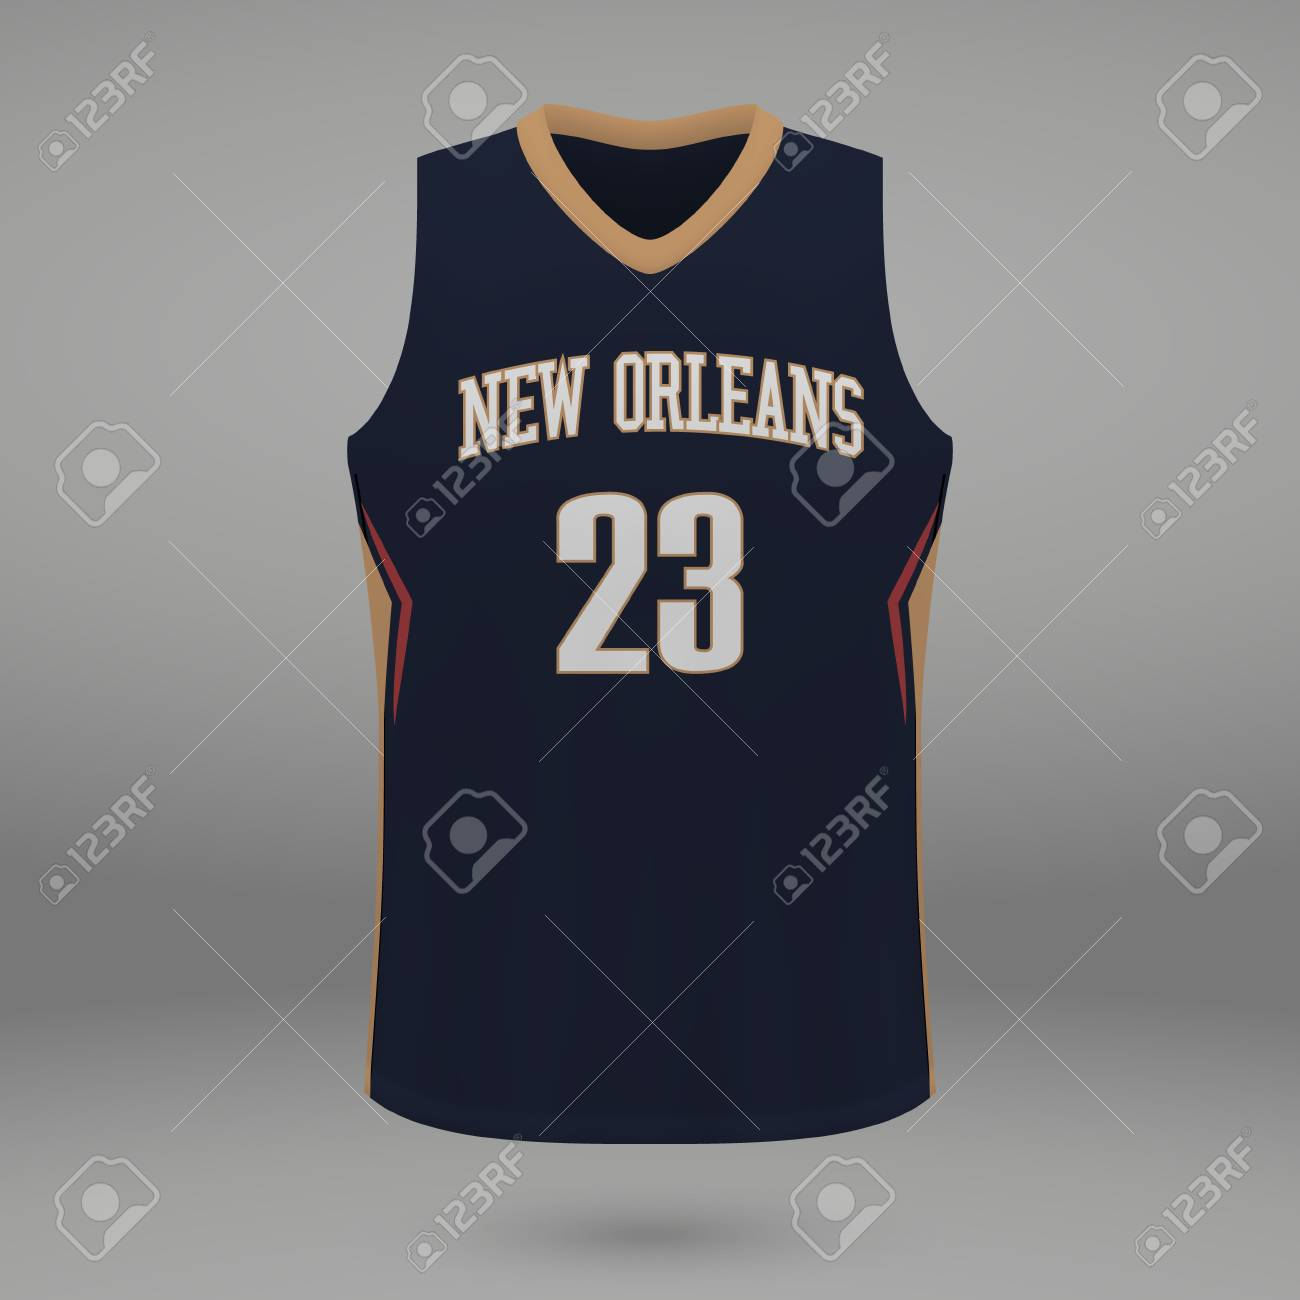 Realistic Sport Shirt New Orleans Pelicans Jersey Template For